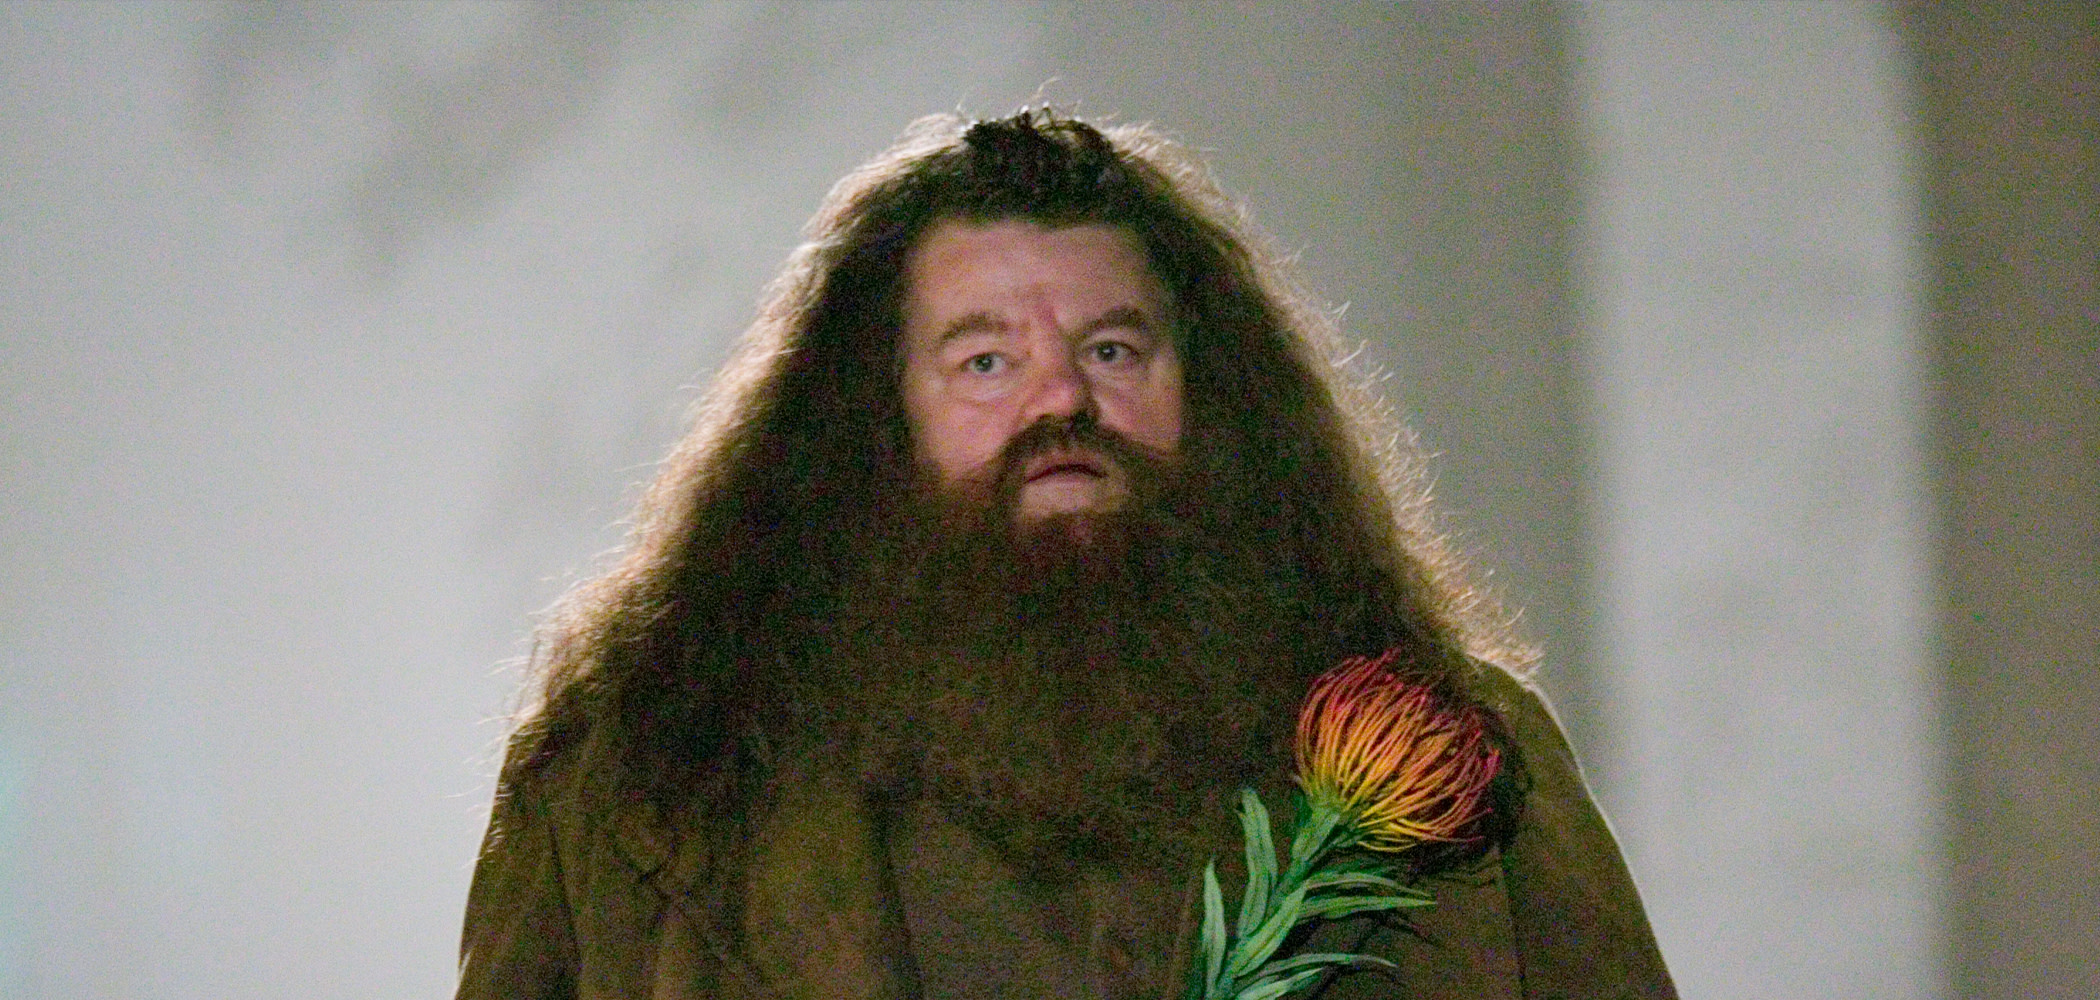 HP-F4-hagrid-web-header